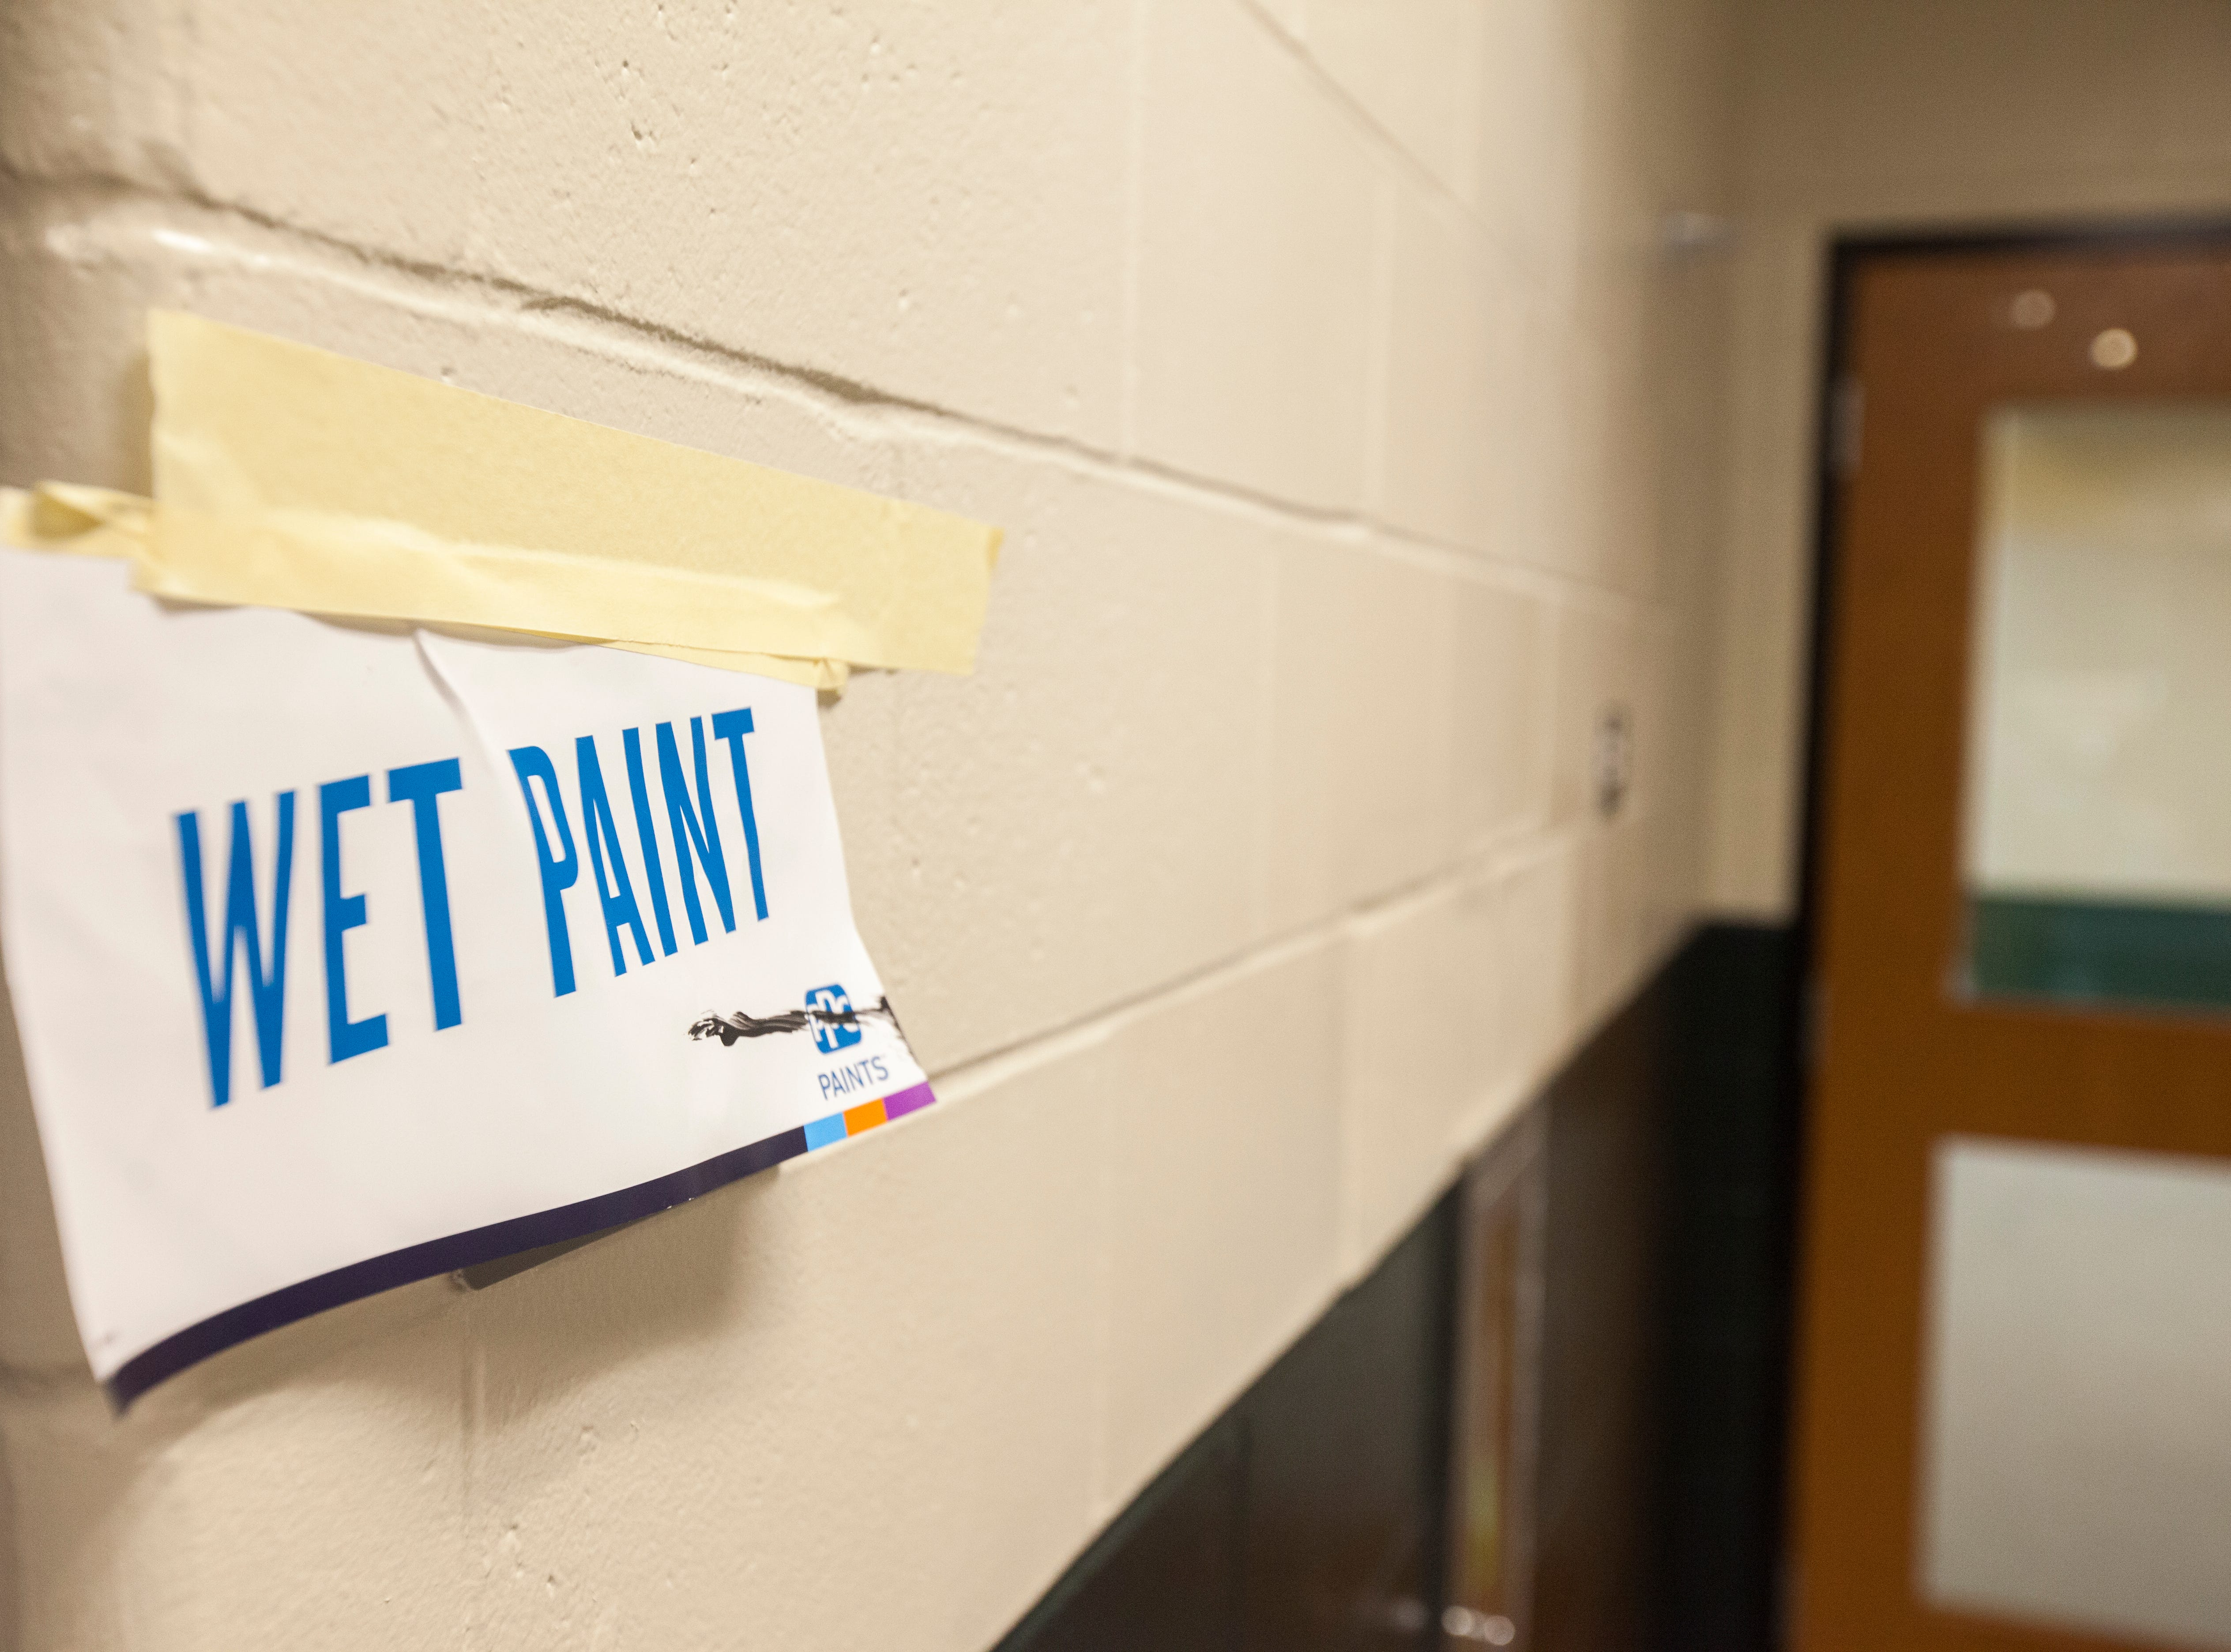 A sign warns of recent paint during a tour of a recently completed addition to facilities on Wednesday, Aug. 15, 2018, at West High School in Iowa City. The addition was the first phase of renovations set to take place for the building that opened in 1968.